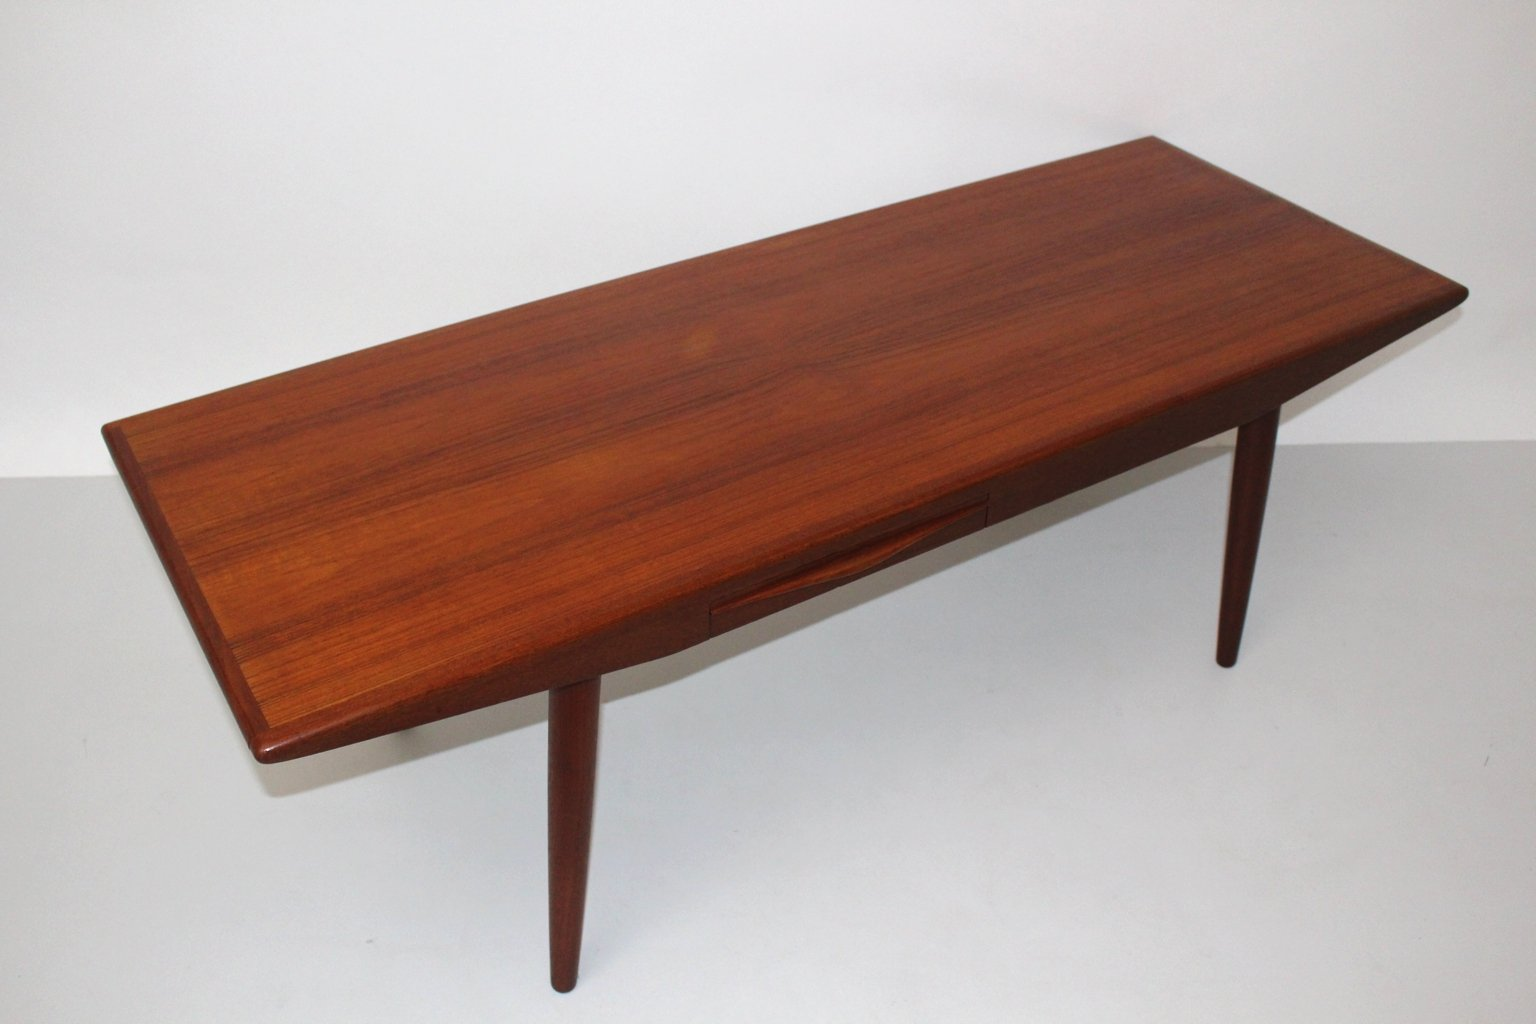 Danish Teak Coffee Table with Drawers by Johannes Andersen